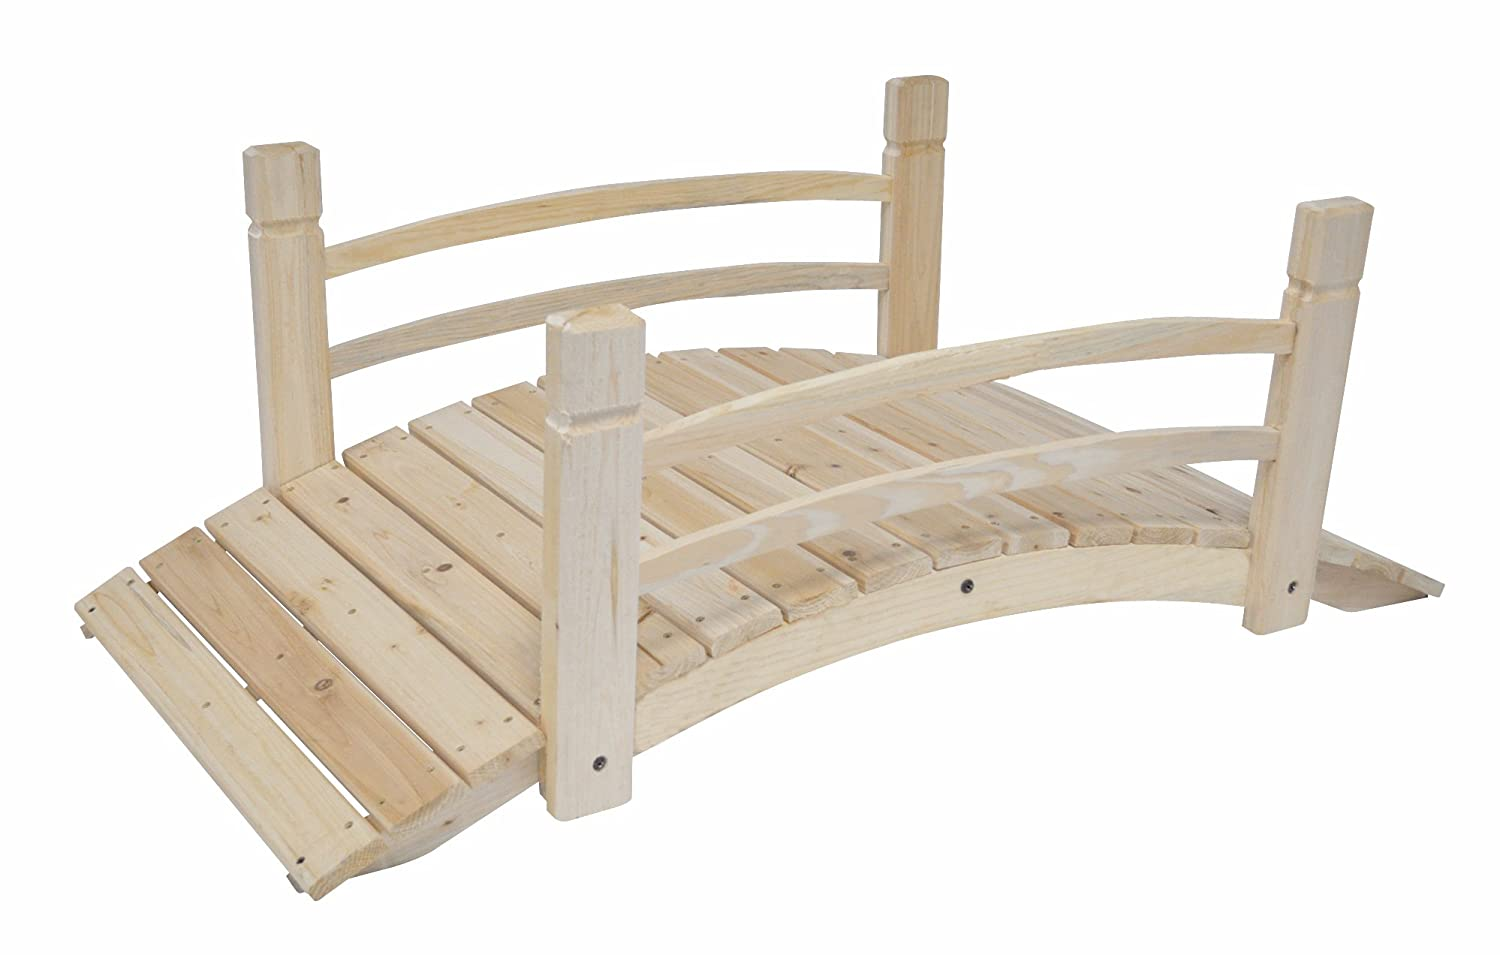 Amazoncom Shine Company Ft Cedar Garden Bridge Natural - Garden bridges